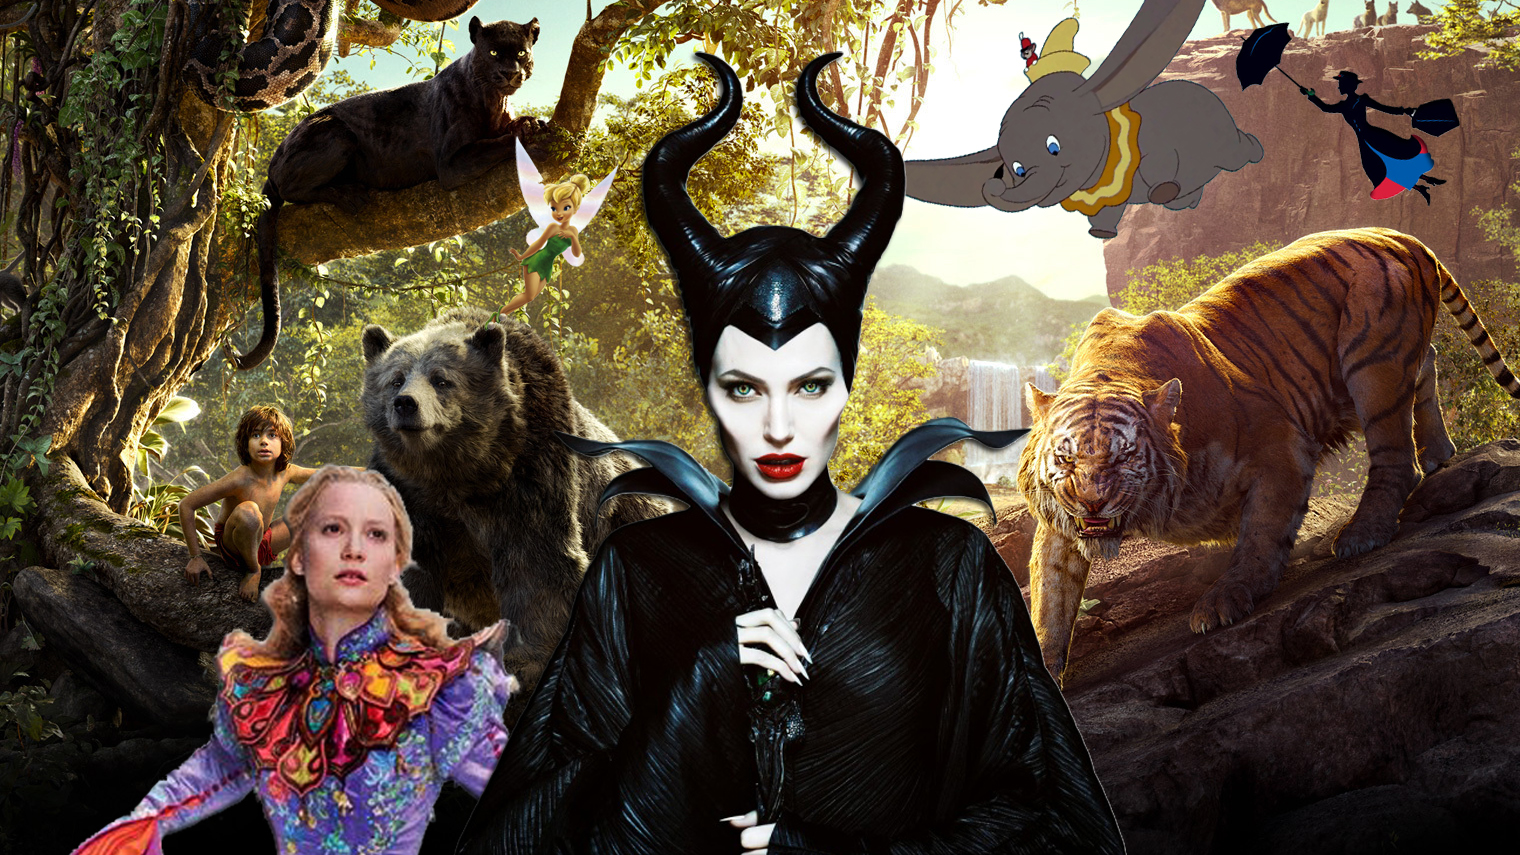 Maleficent 2, Jungle Book 2 and More Announced!